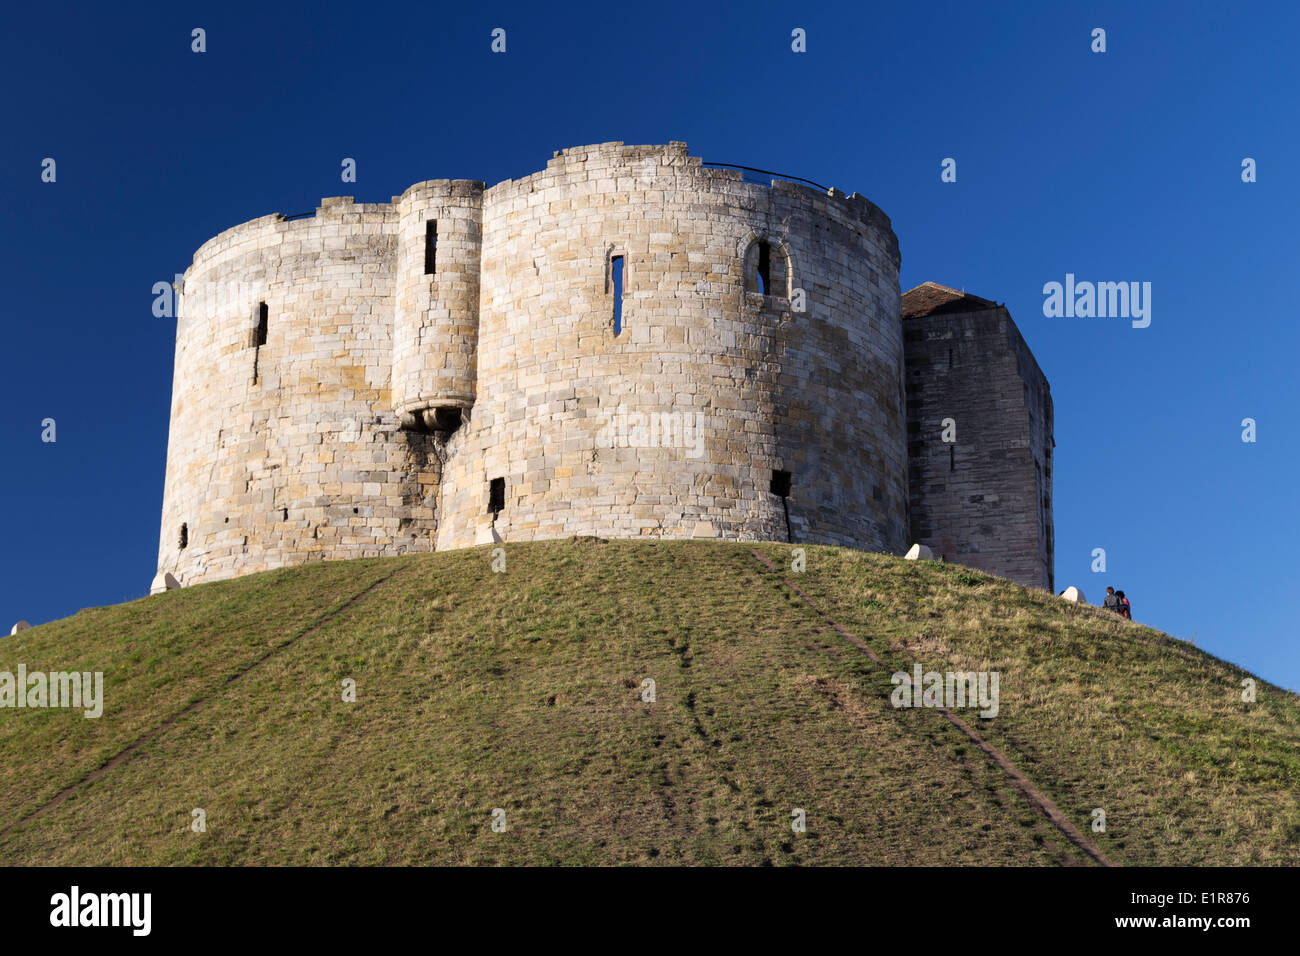 UK, York, Cliffords Tower. - Stock Image